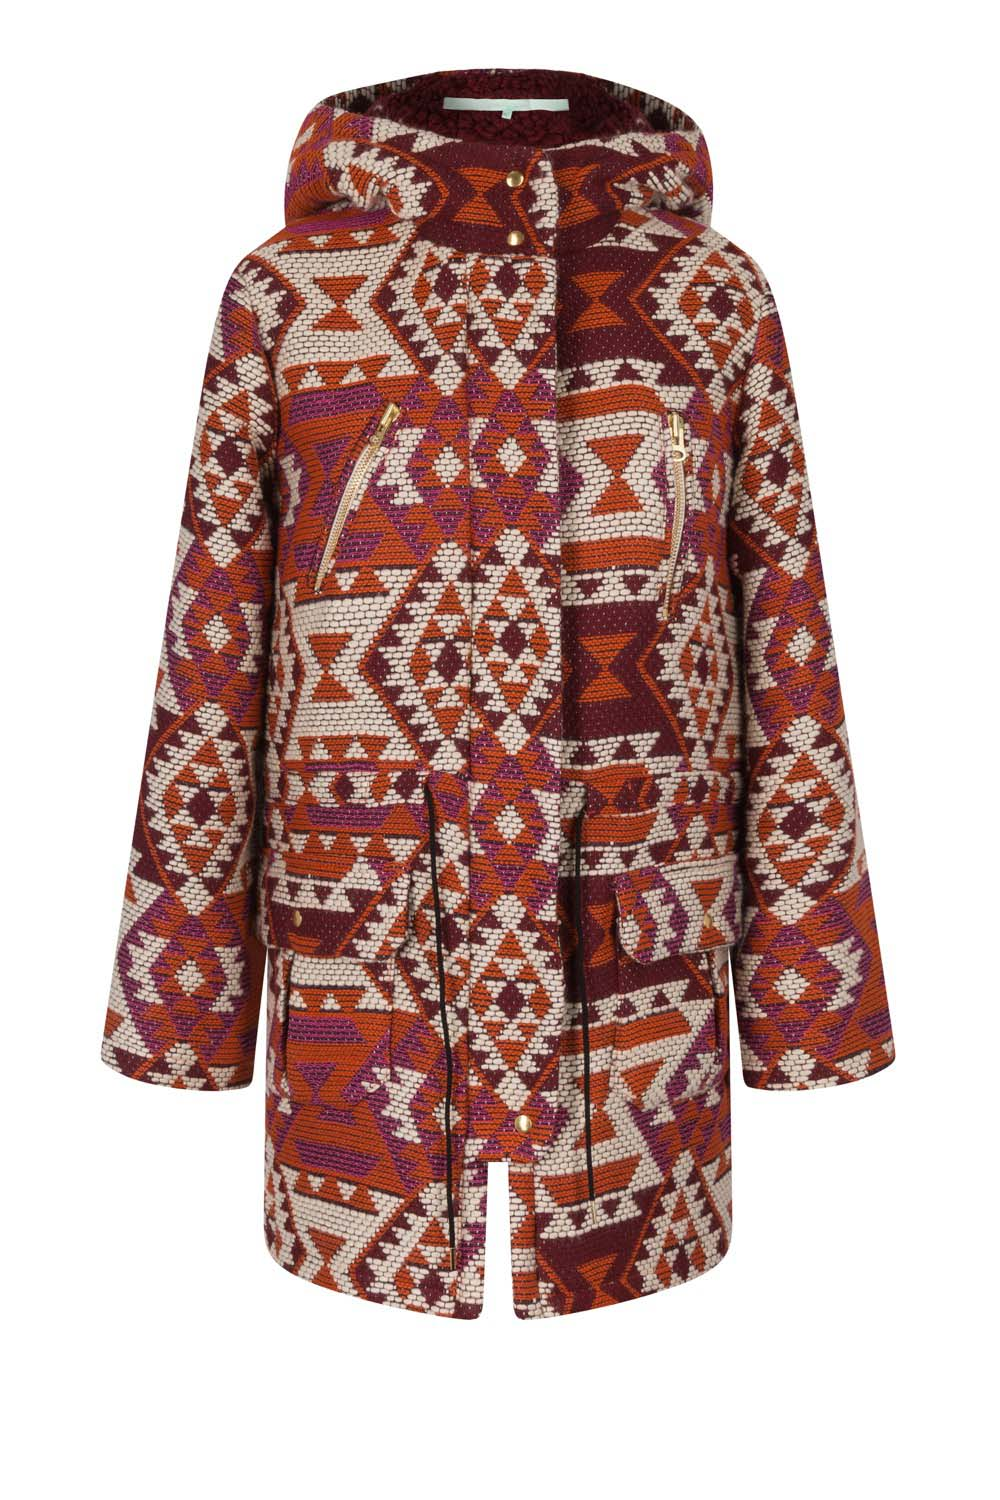 Jacobs parka in kilim fabric